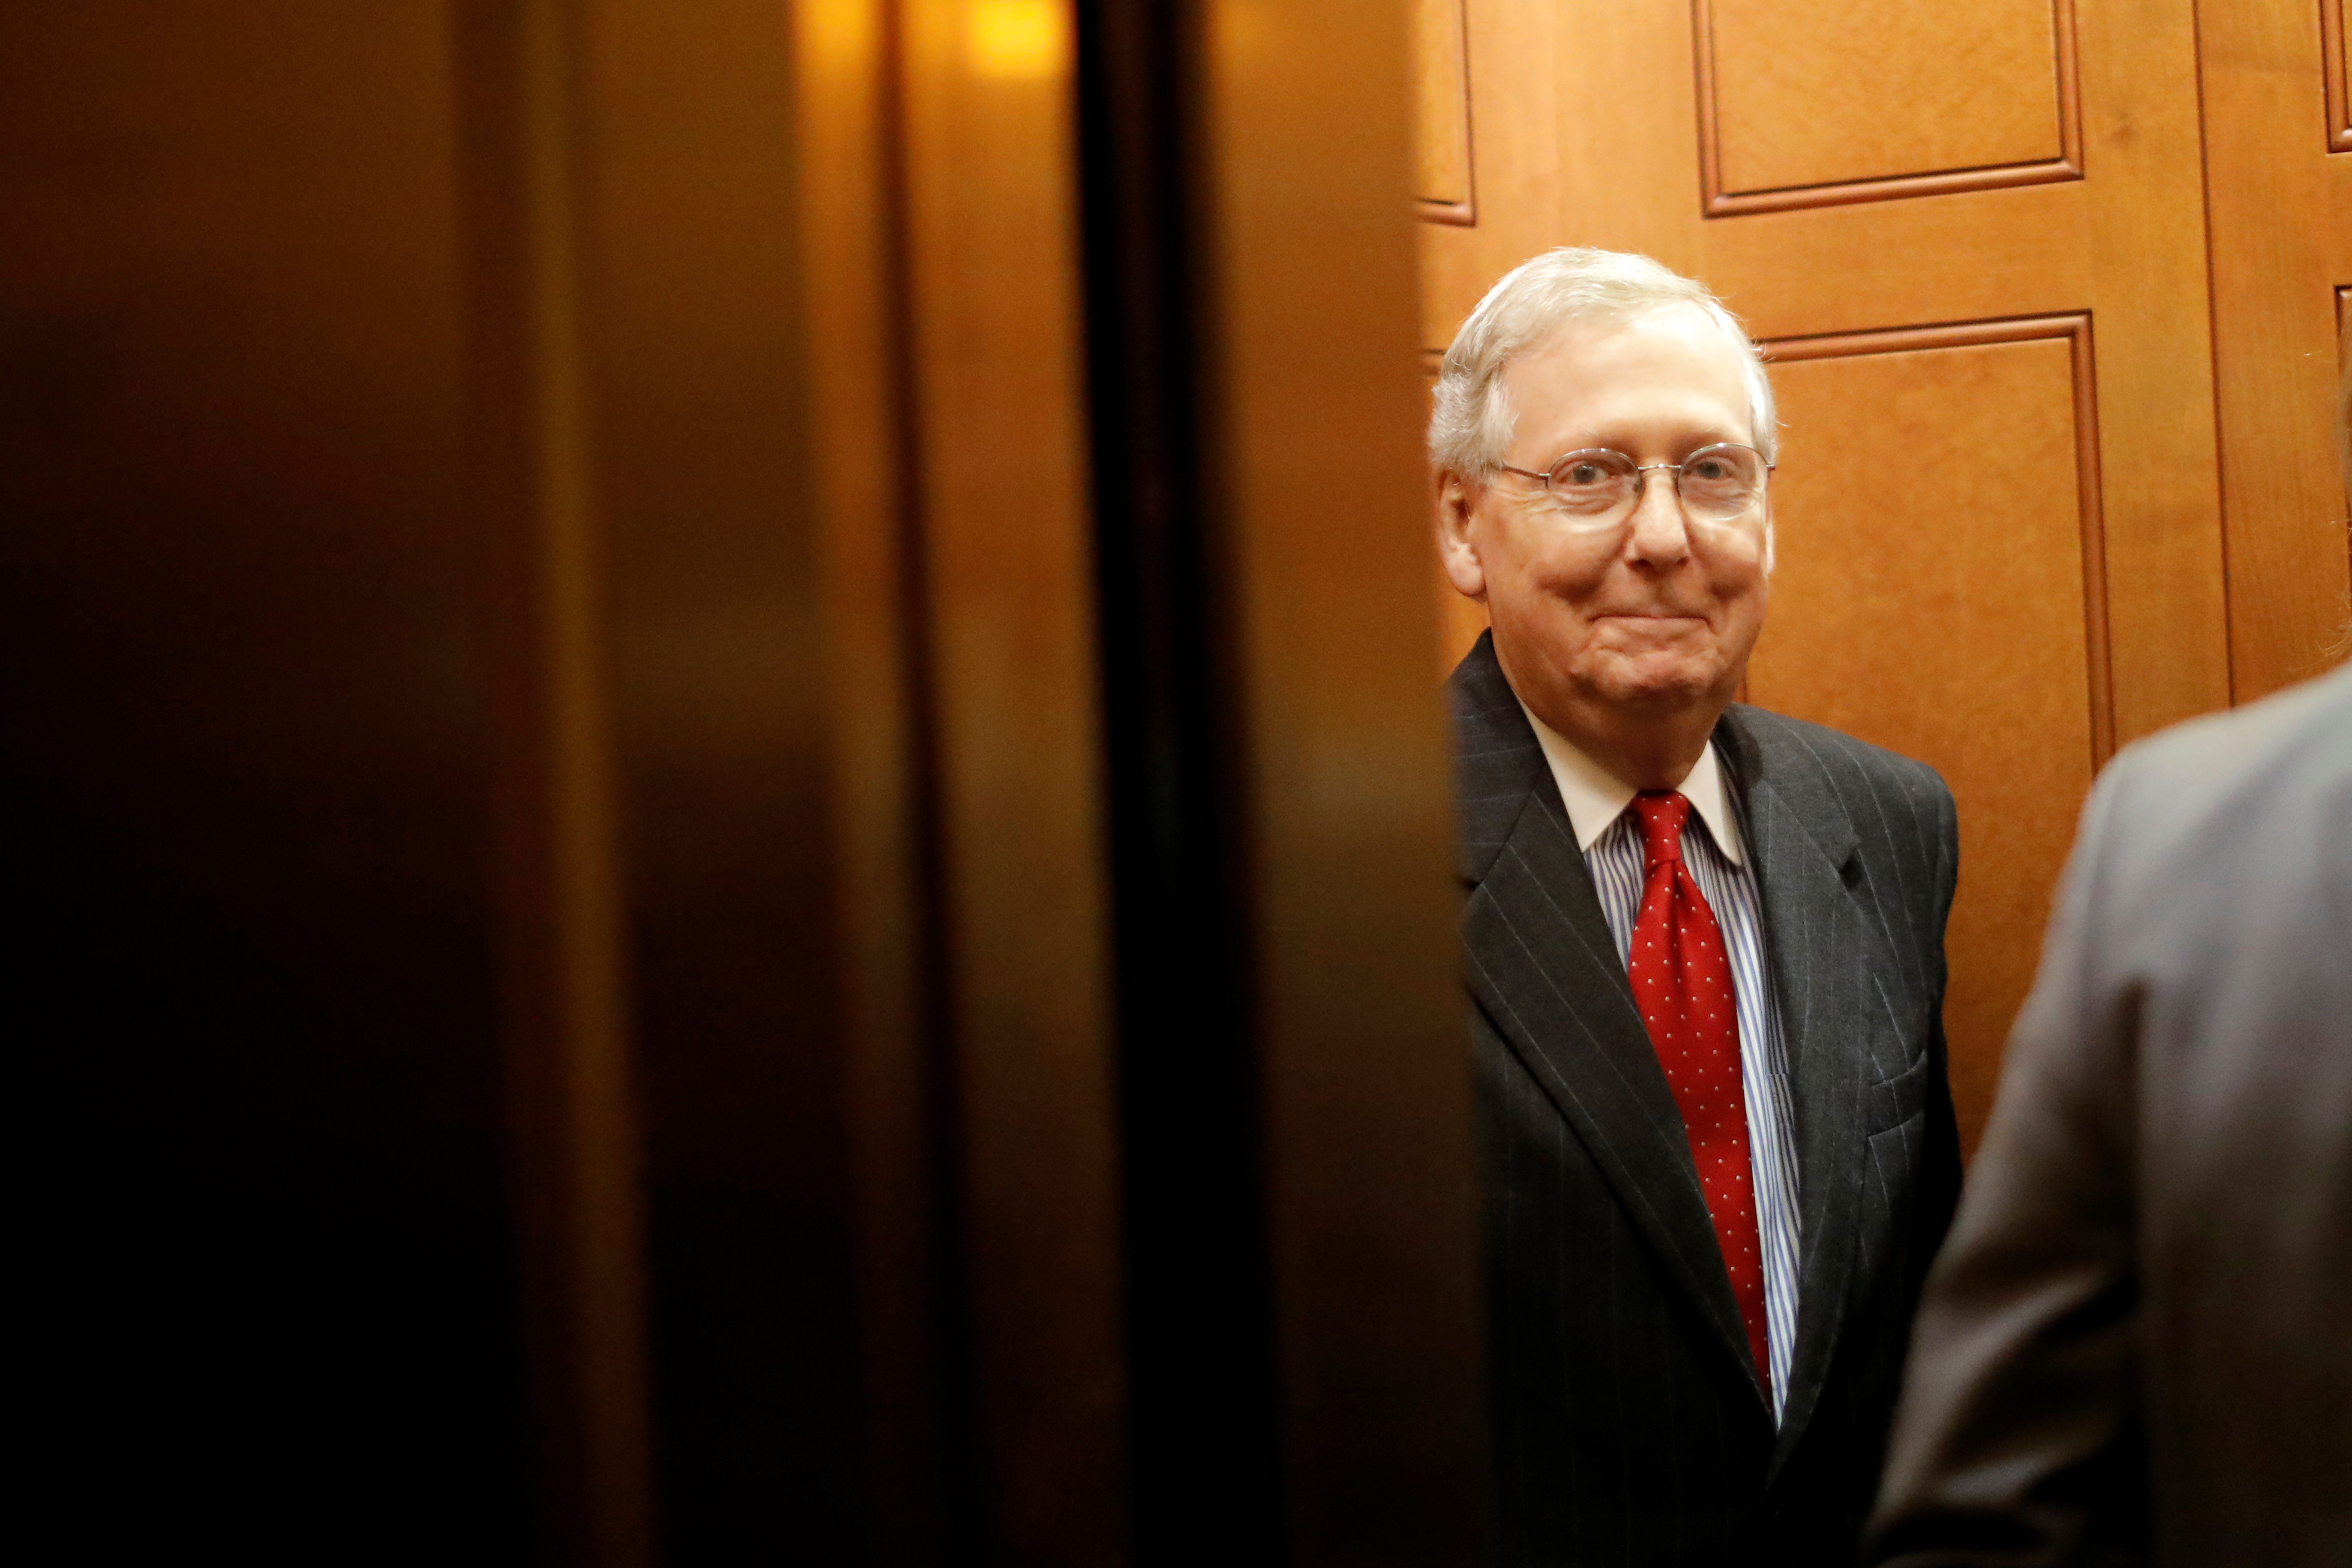 Senate Majority Leader Mitch McConnell (R-KY) smiles as he leaves the Republicans weekly policy luncheon on Capitol Hill in Washington, U.S., November 28, 2017. REUTERS/Carlos Barria